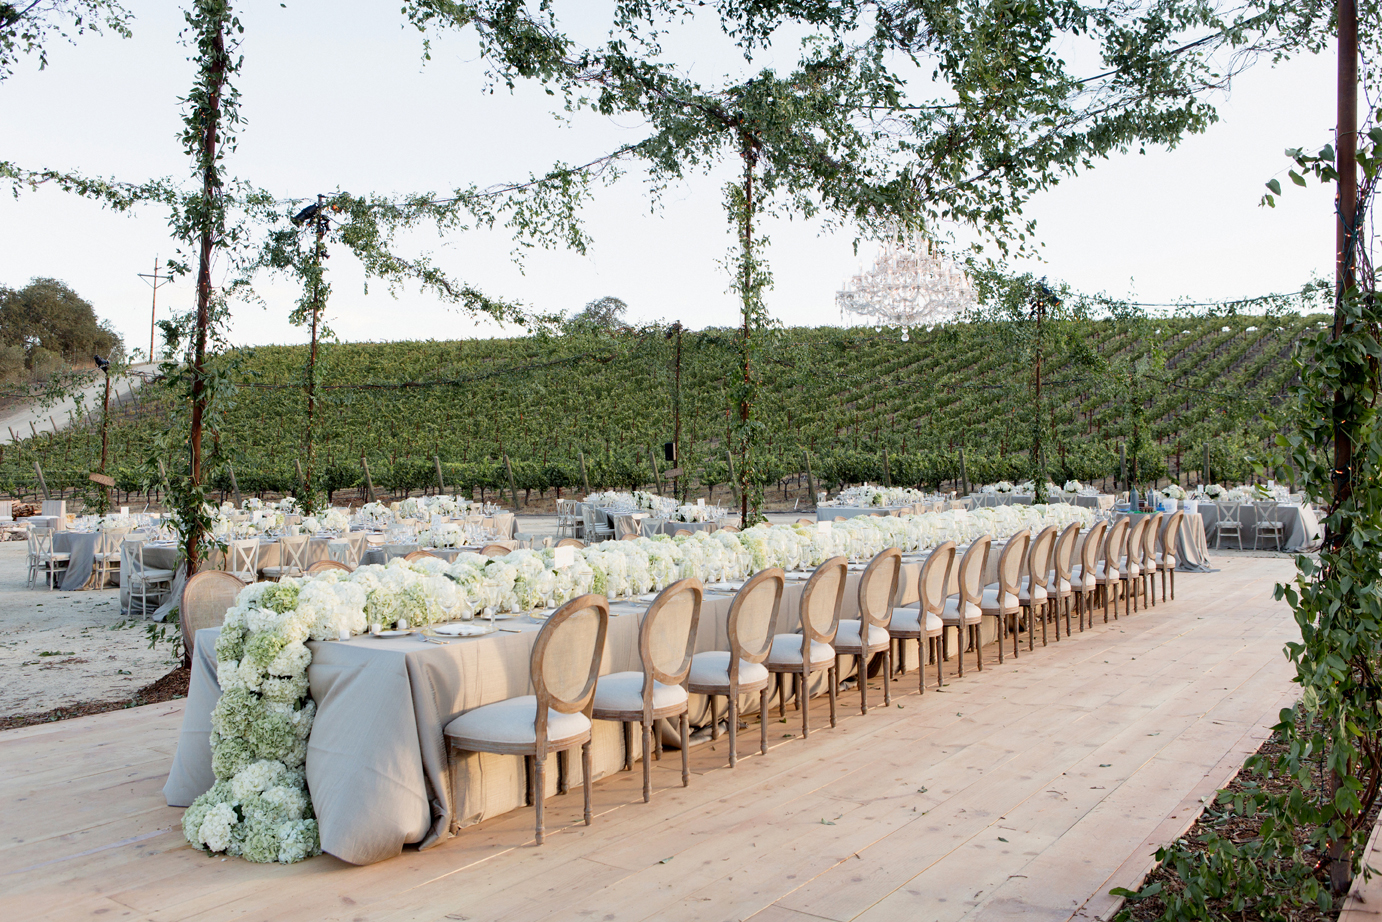 Outdoor Weddings Inspiration For Receptions Without Tents Inside